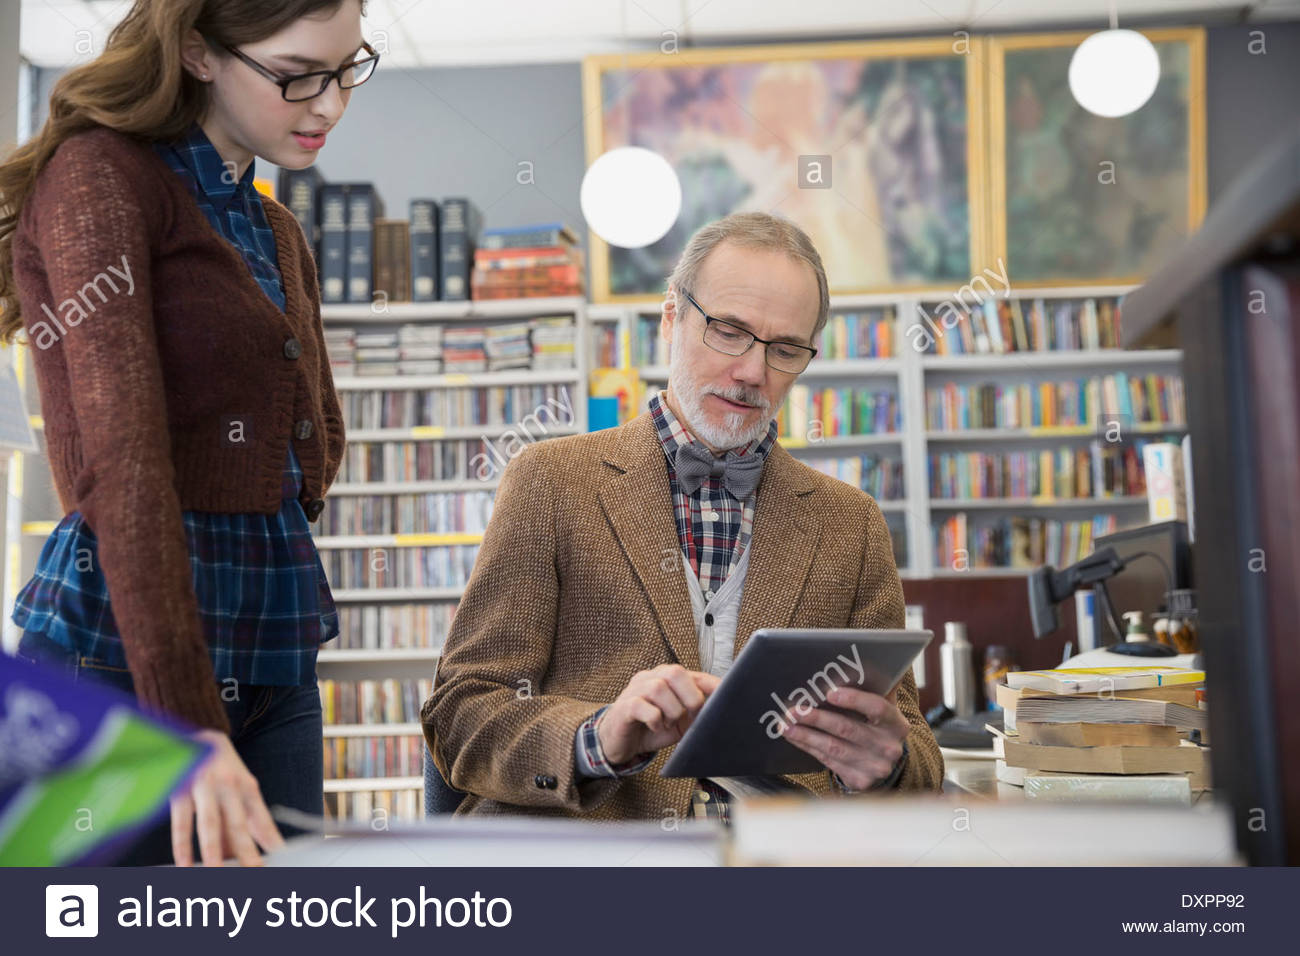 Woman watching bookstore owner using digital tablet - Stock Image